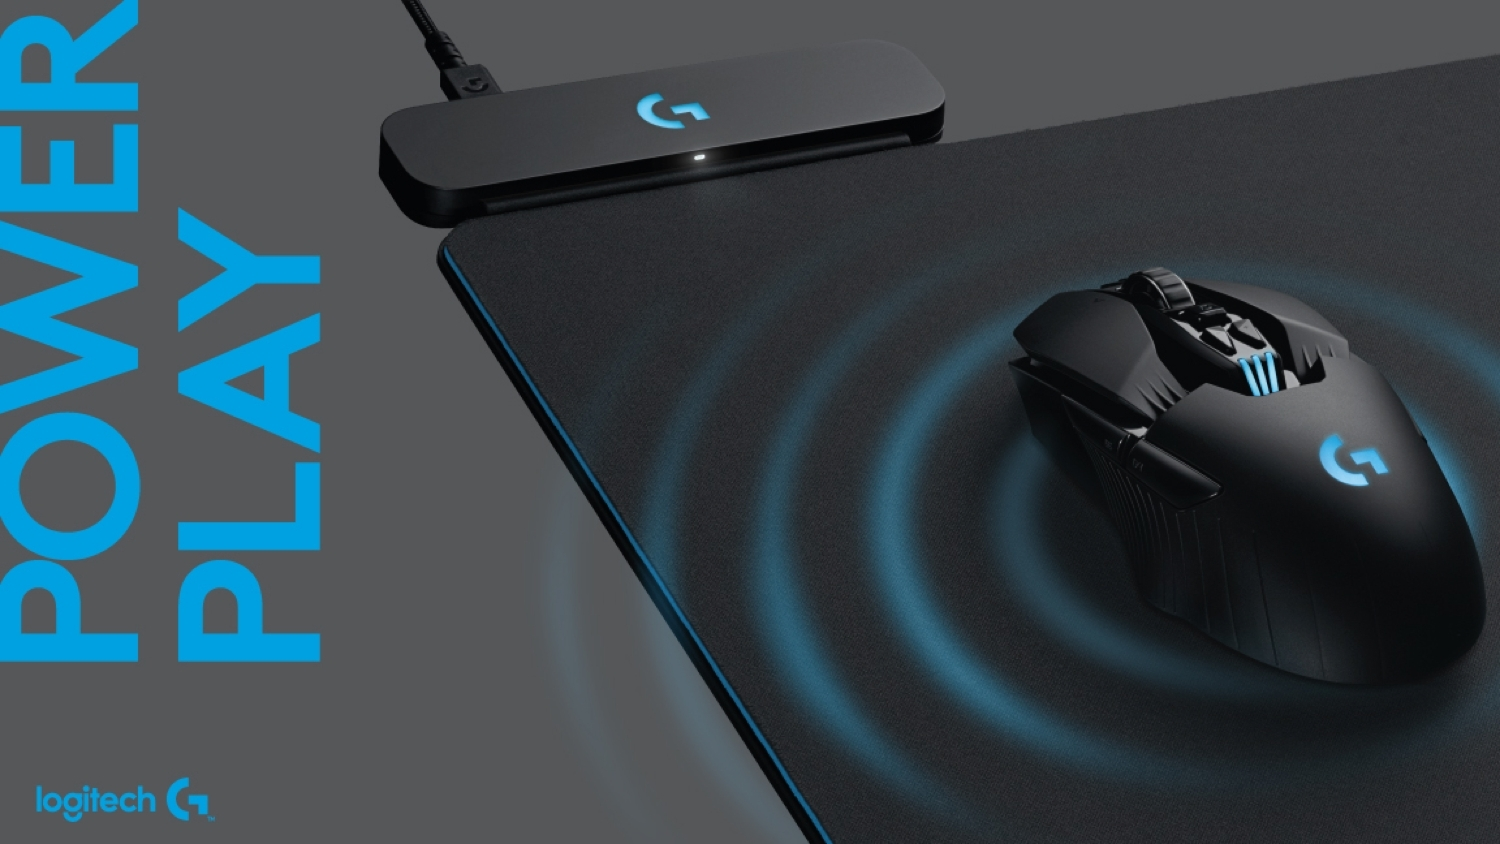 Logitech's PowerPlay mat wirelessly charges a mouse while you use it